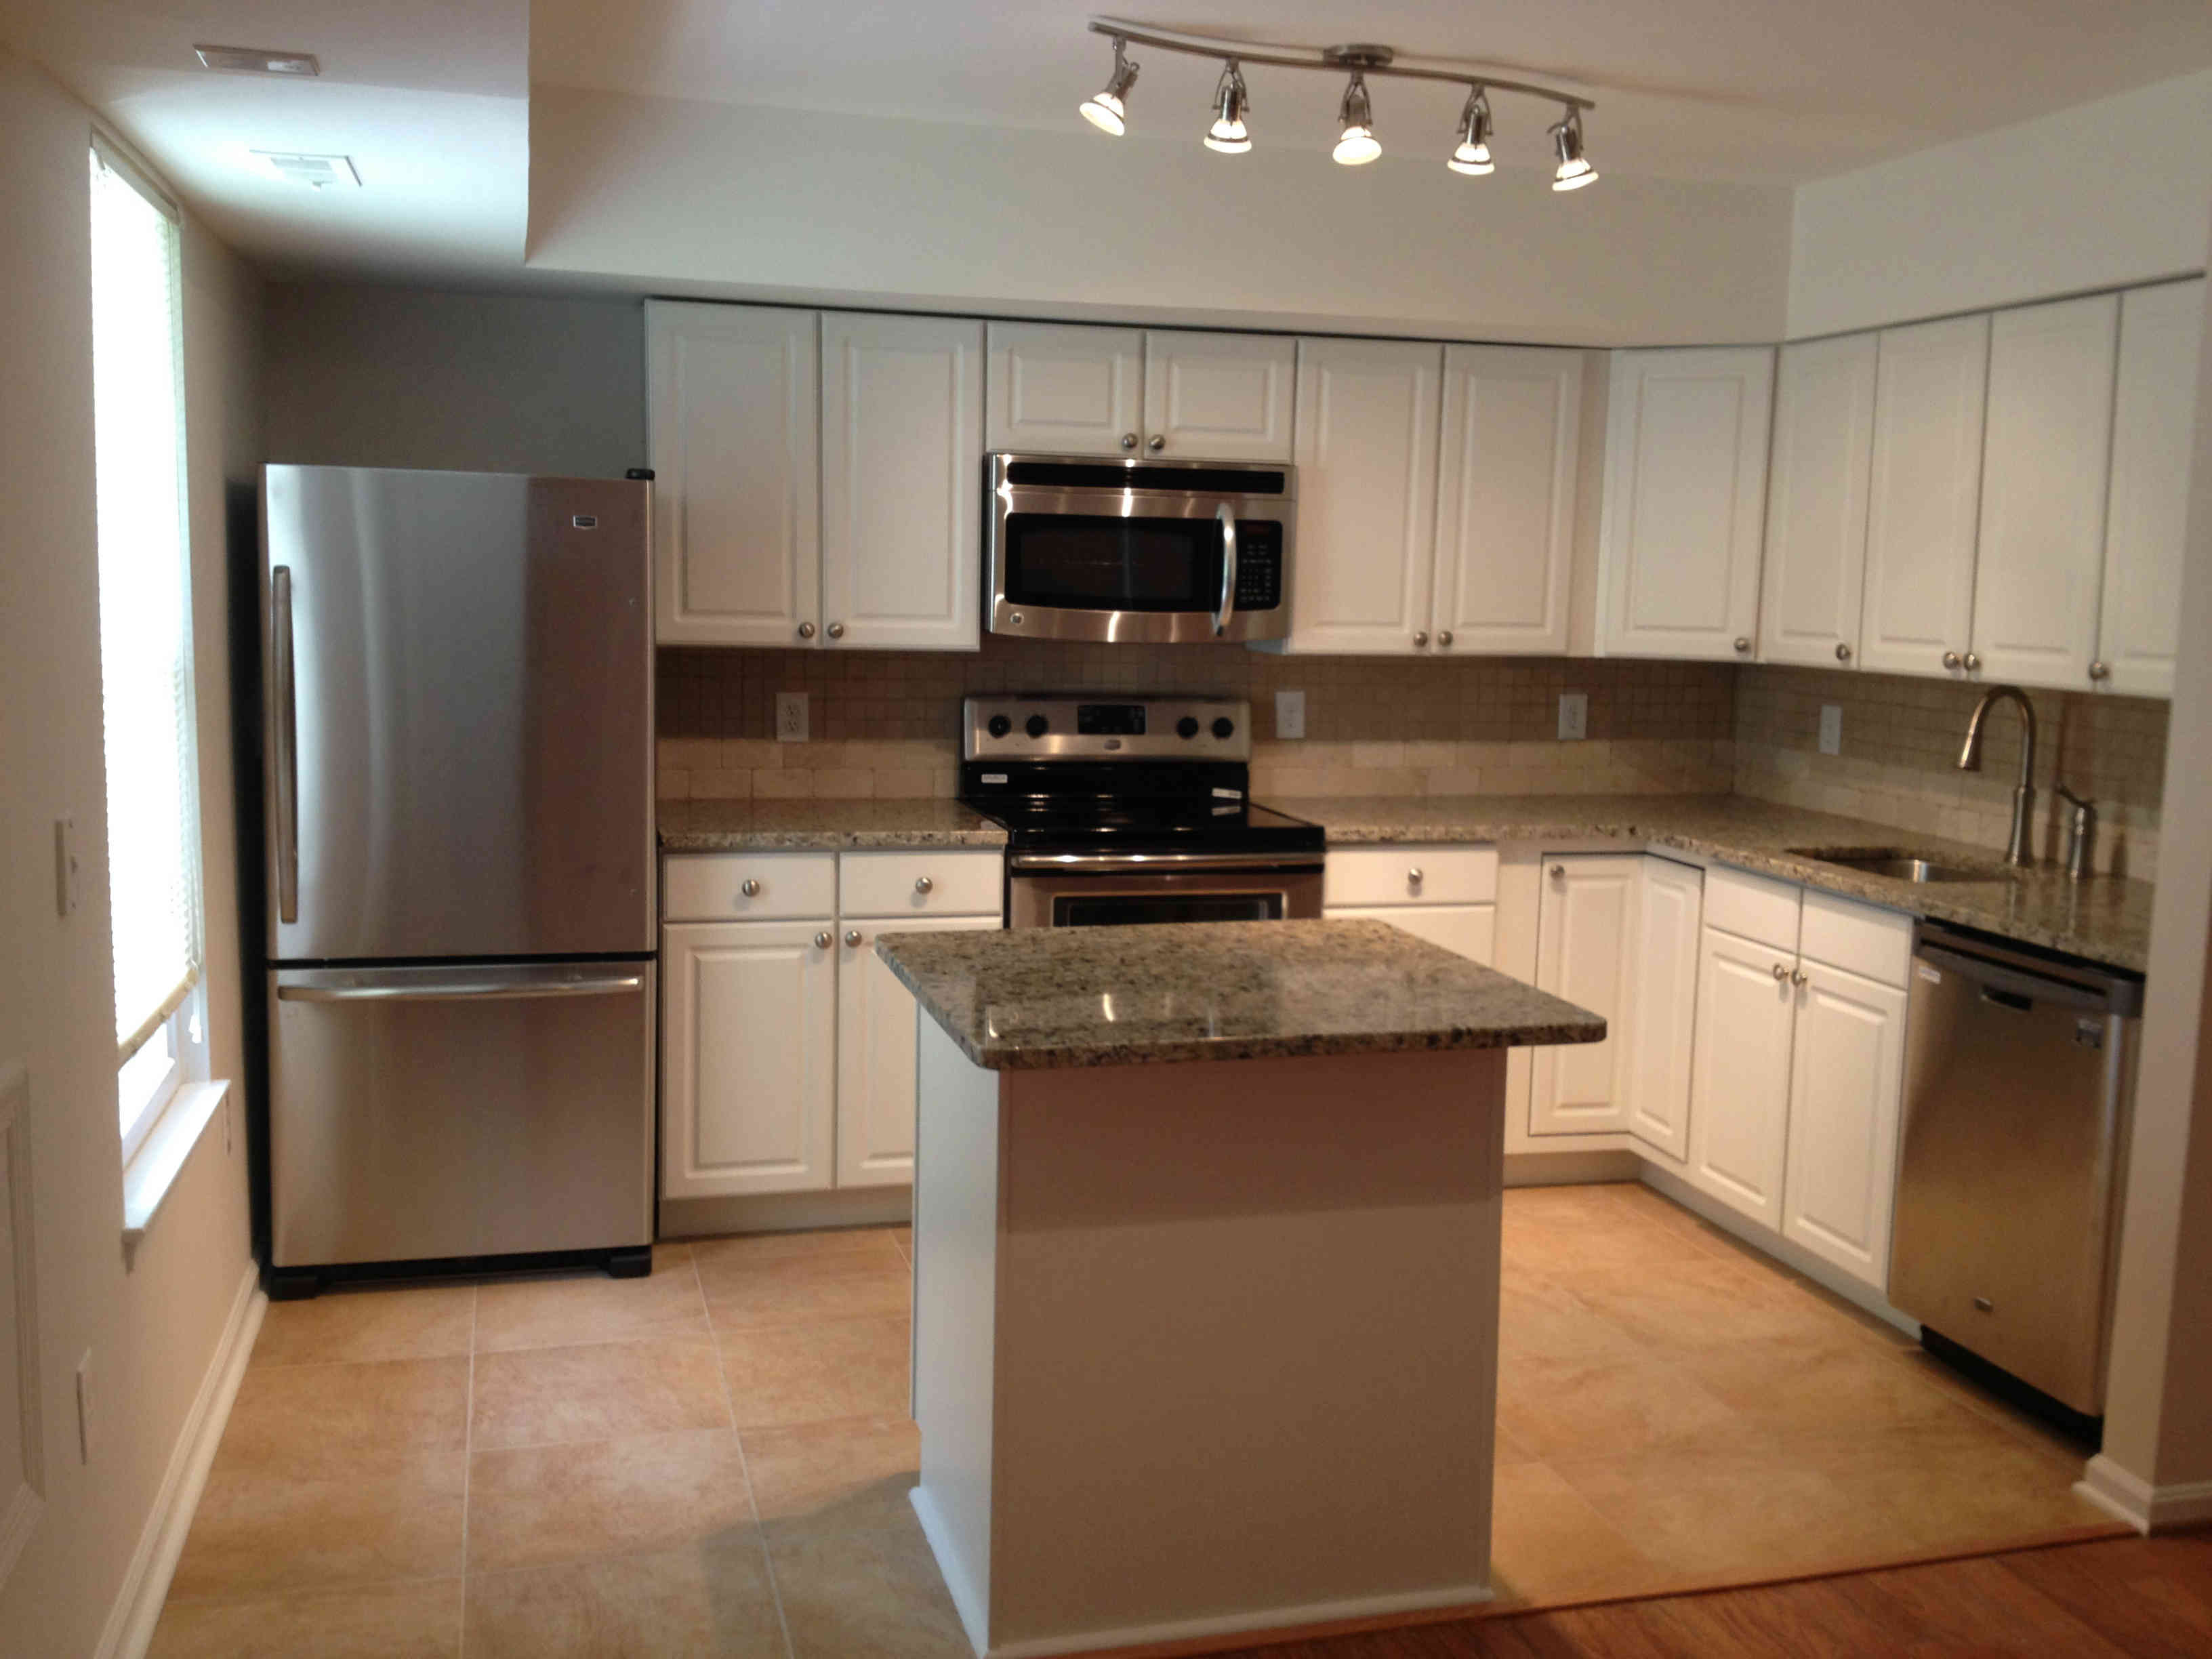 Kitchen Remodeling Washington Dc Pleasing Kitchen Remodeling In Washington Dc & Bethesda Md  Melness . Design Ideas